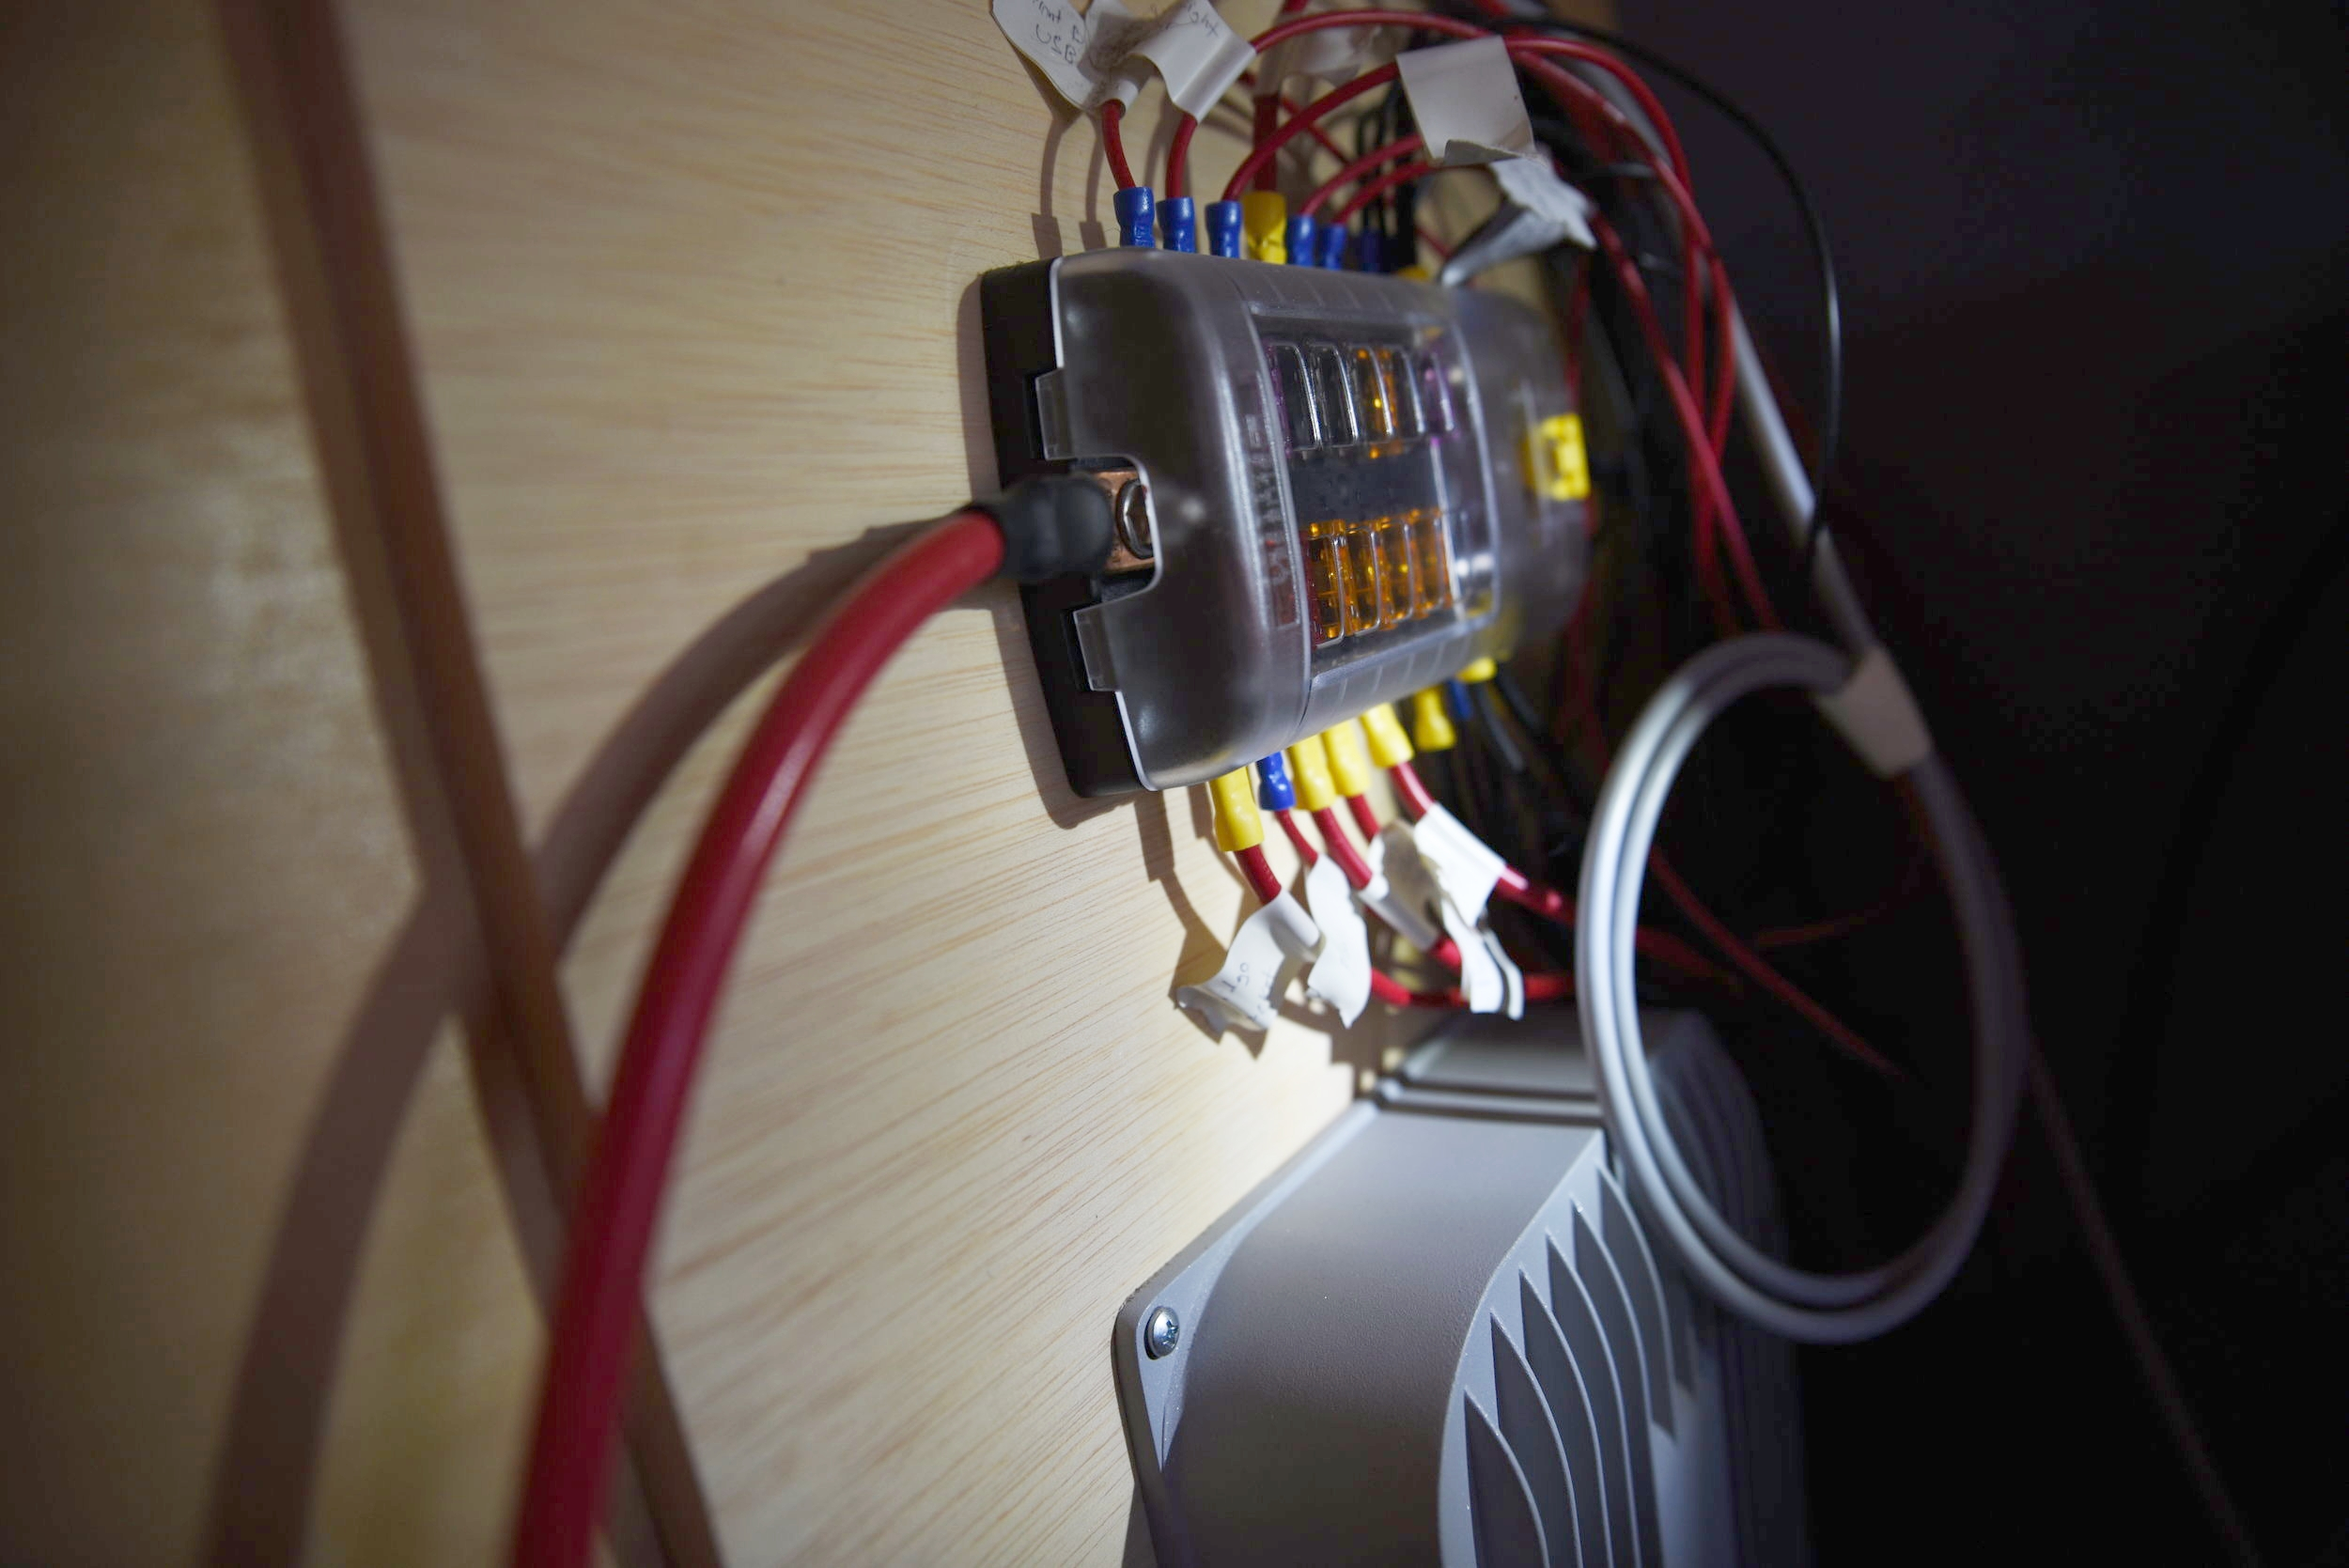 The fuse box and solar charge controller are mounted to the back of the bed platform's front.